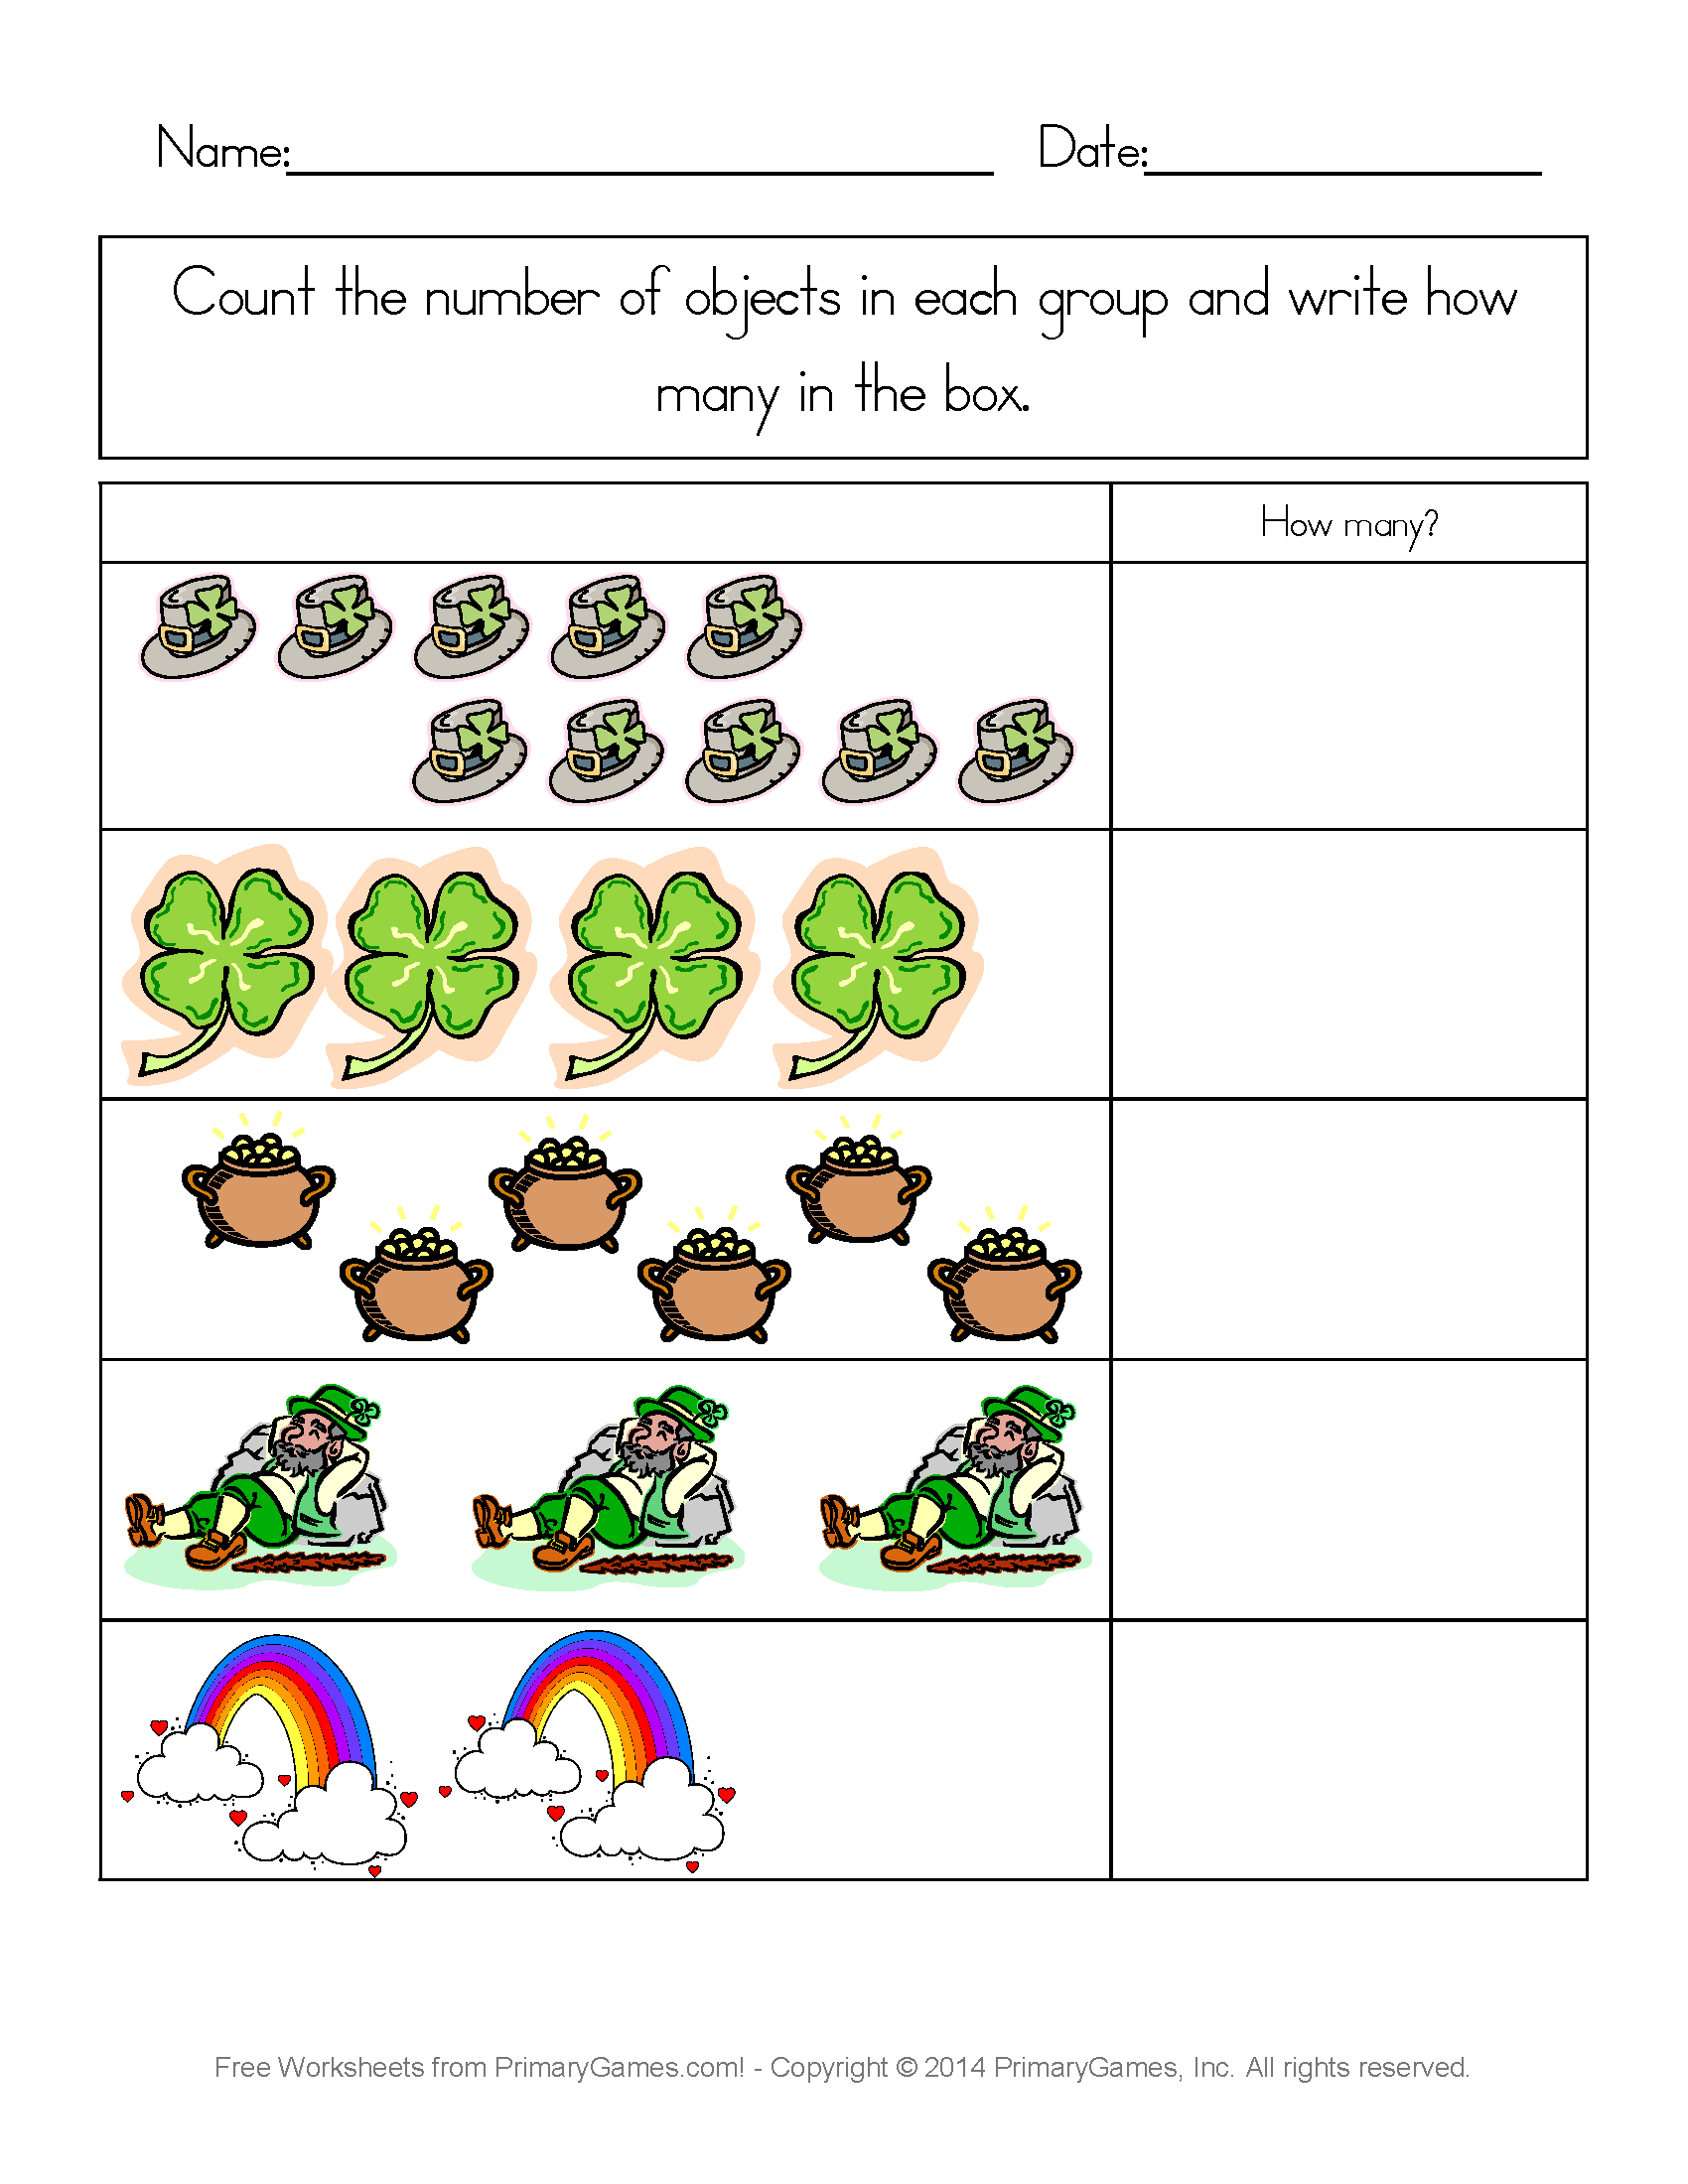 St. Patrick's Day Worksheets: St. Patrick's Day Counting Practice ...